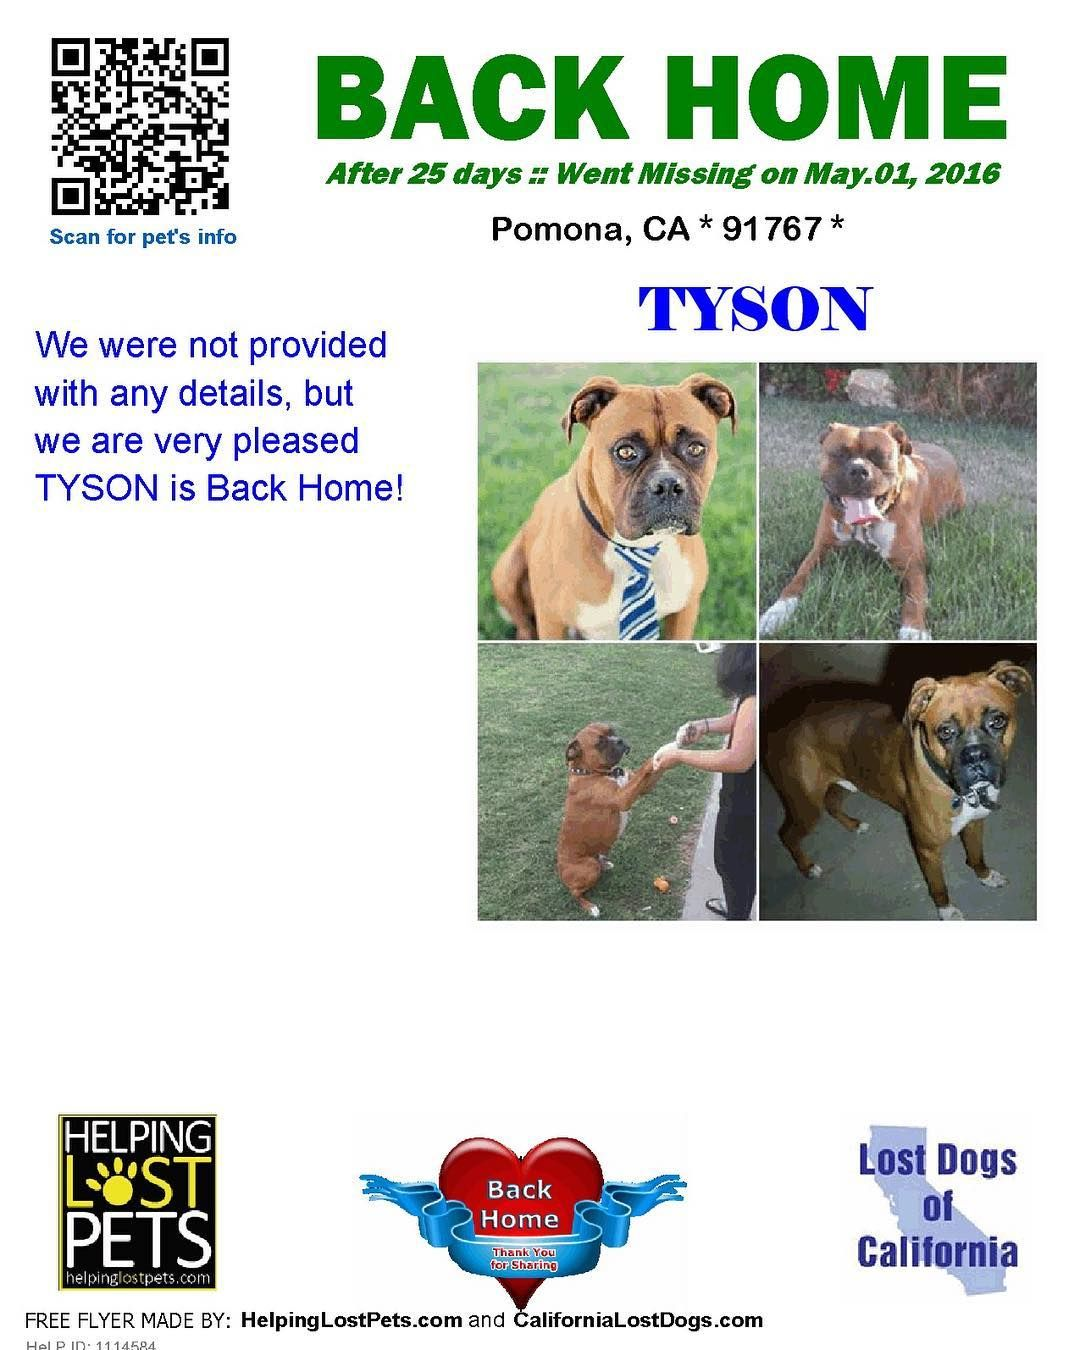 Backhome Tyson Boxer From Pomona Ca Has Been Reunited With